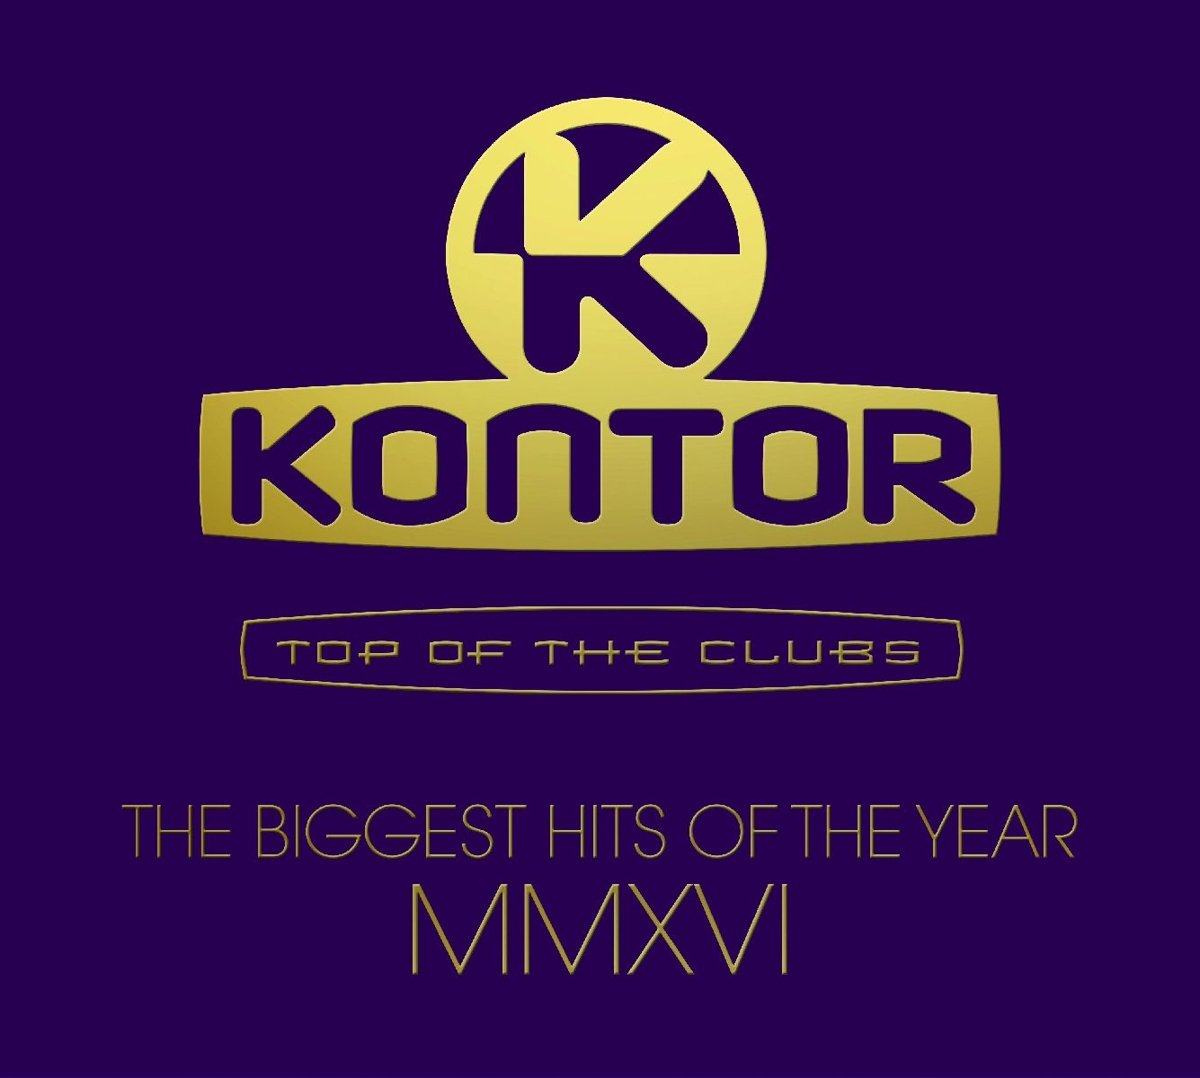 VA - Kontor Top Of The Clubs The Biggest Hits Of The Year MMXVI - 3CD - FLAC - 2016 - VOLDiES Download